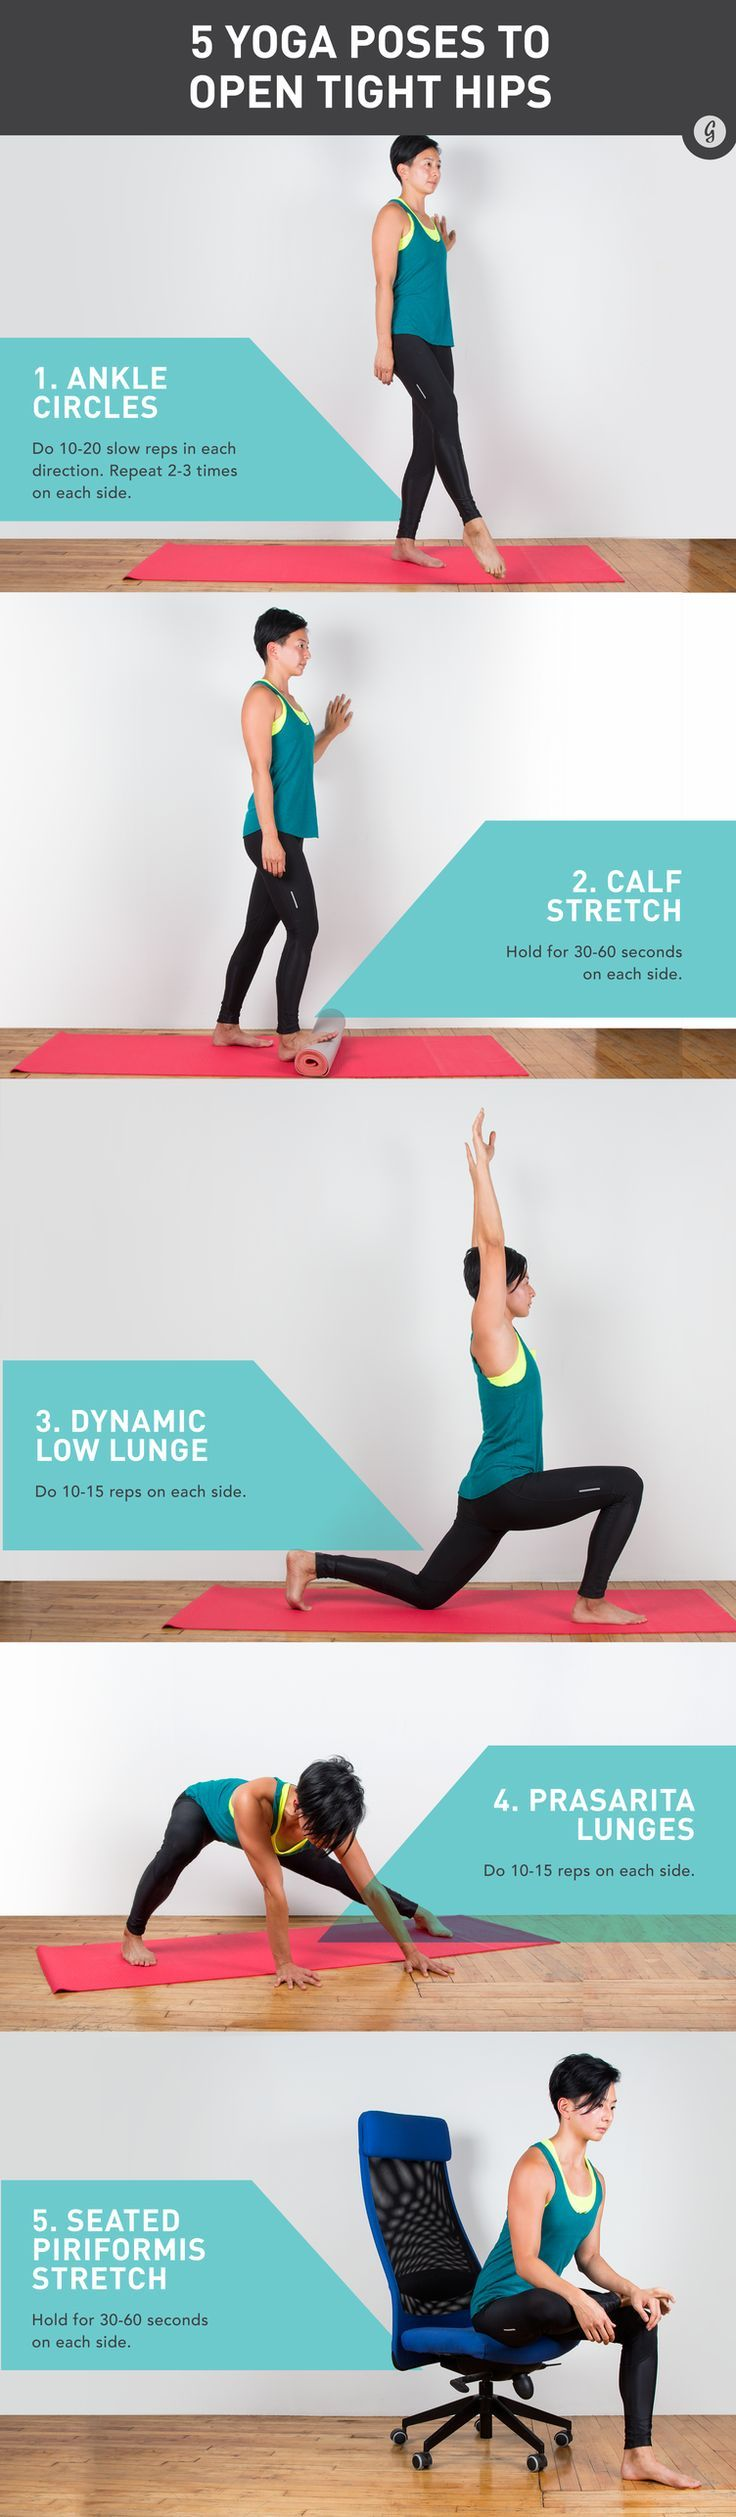 Yoga Poses for Healthy Hips #healthy #hips #yoga